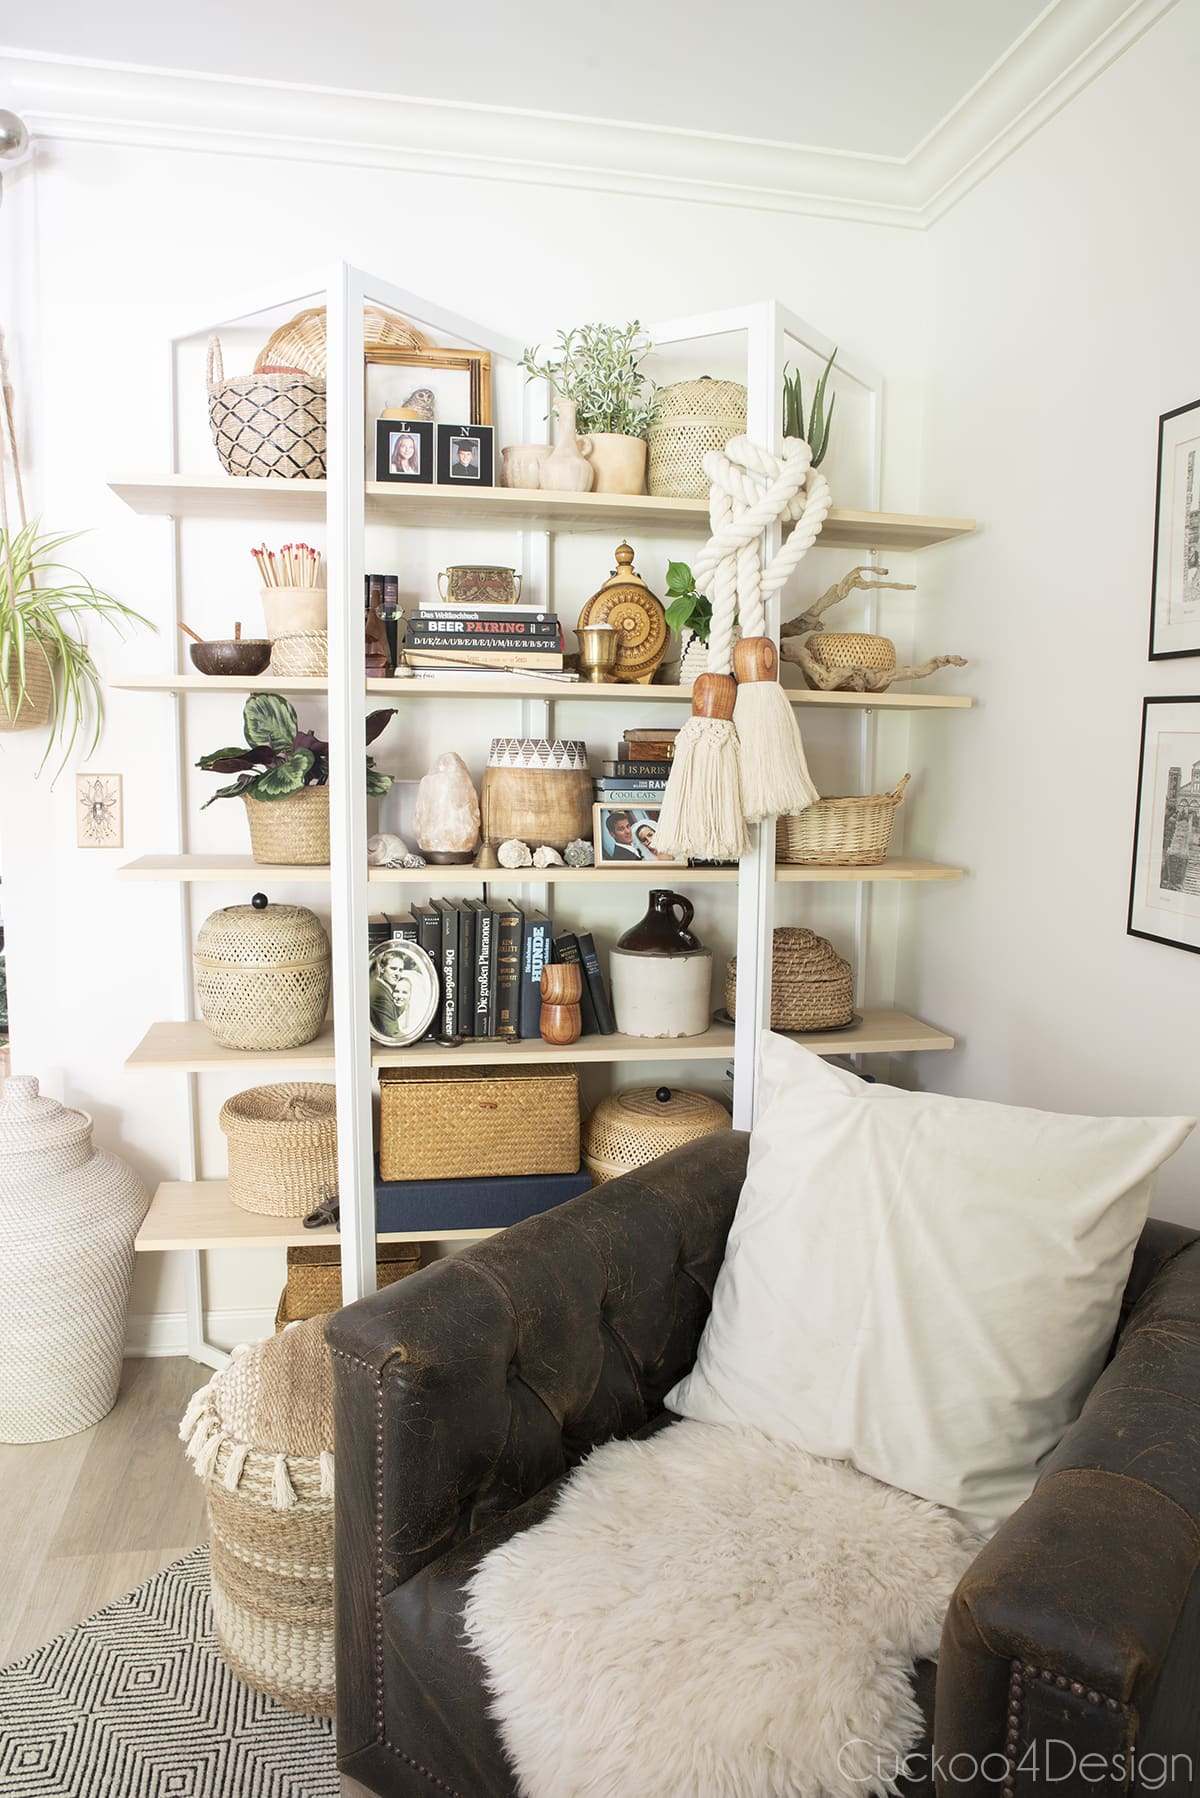 curated shelf decor with lots of baskets and plants